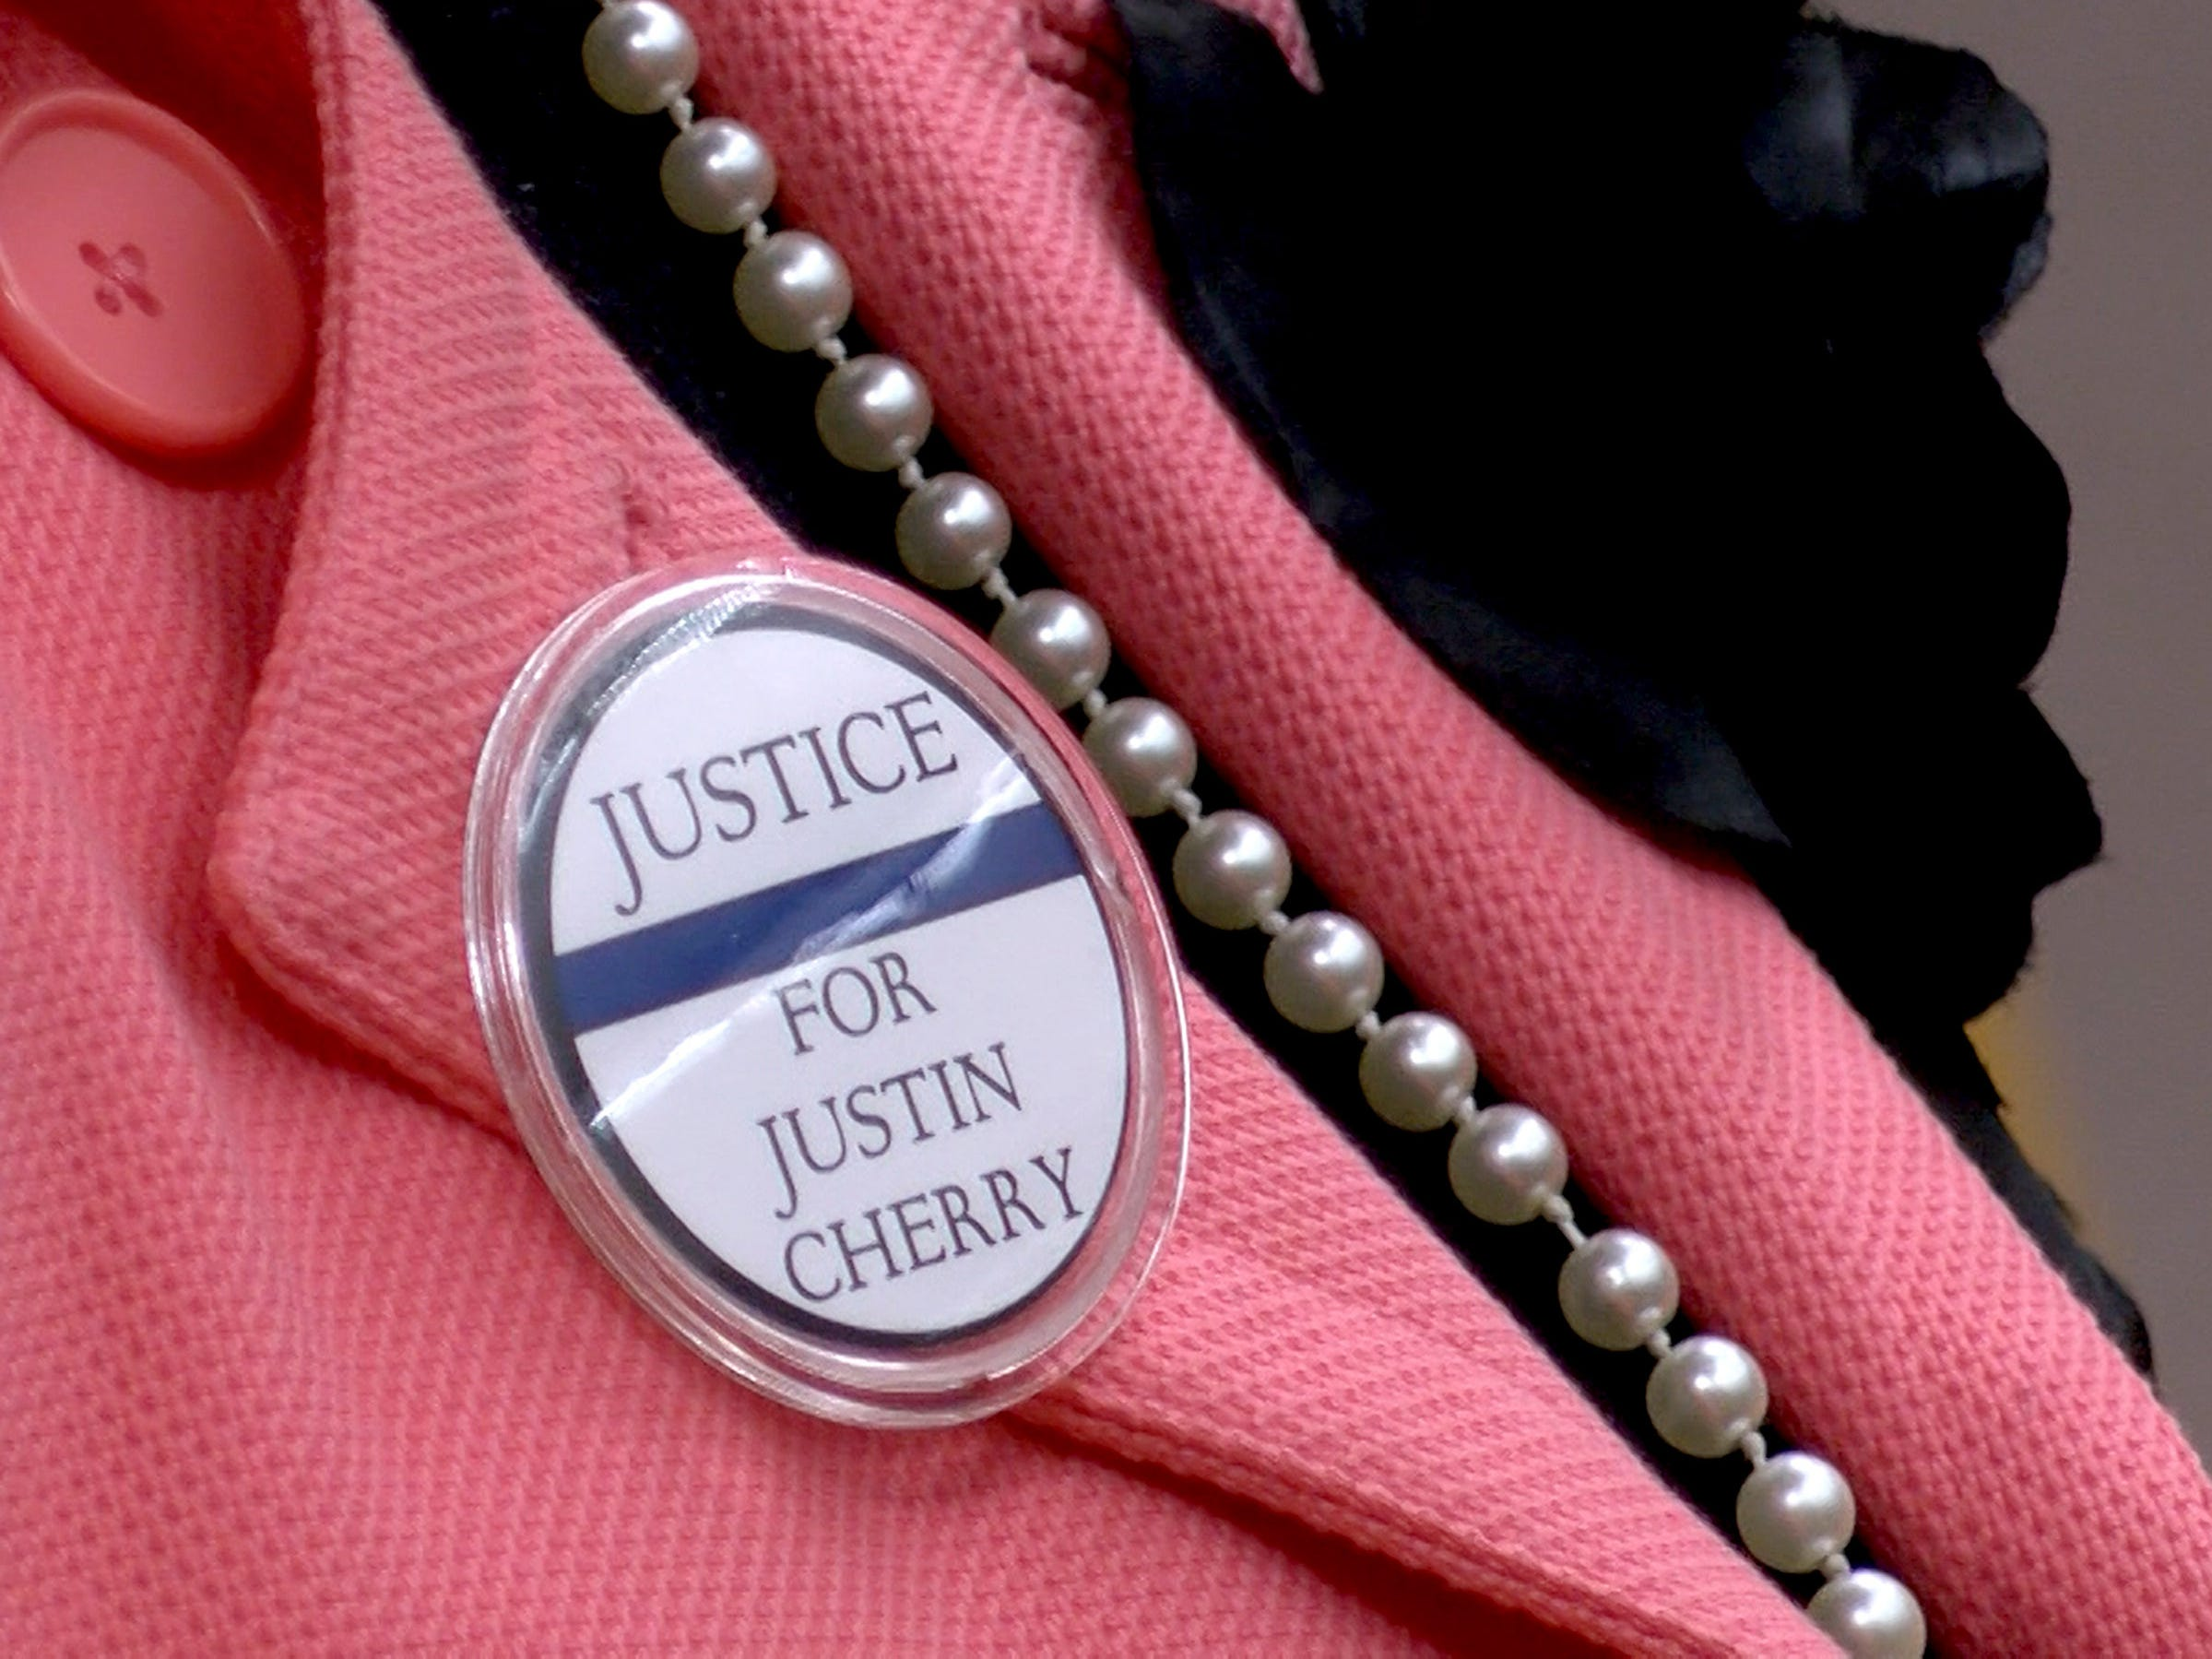 """A woman wears a """"Justice for Justin Cherry"""" pin during his trial in State Superior Court in Toms River Tuesday, April 30, 2019.  Cherry, a Tuckerton police corporal, is charged with misconduct for siccing his police dog on motorist Wendy Tucker."""